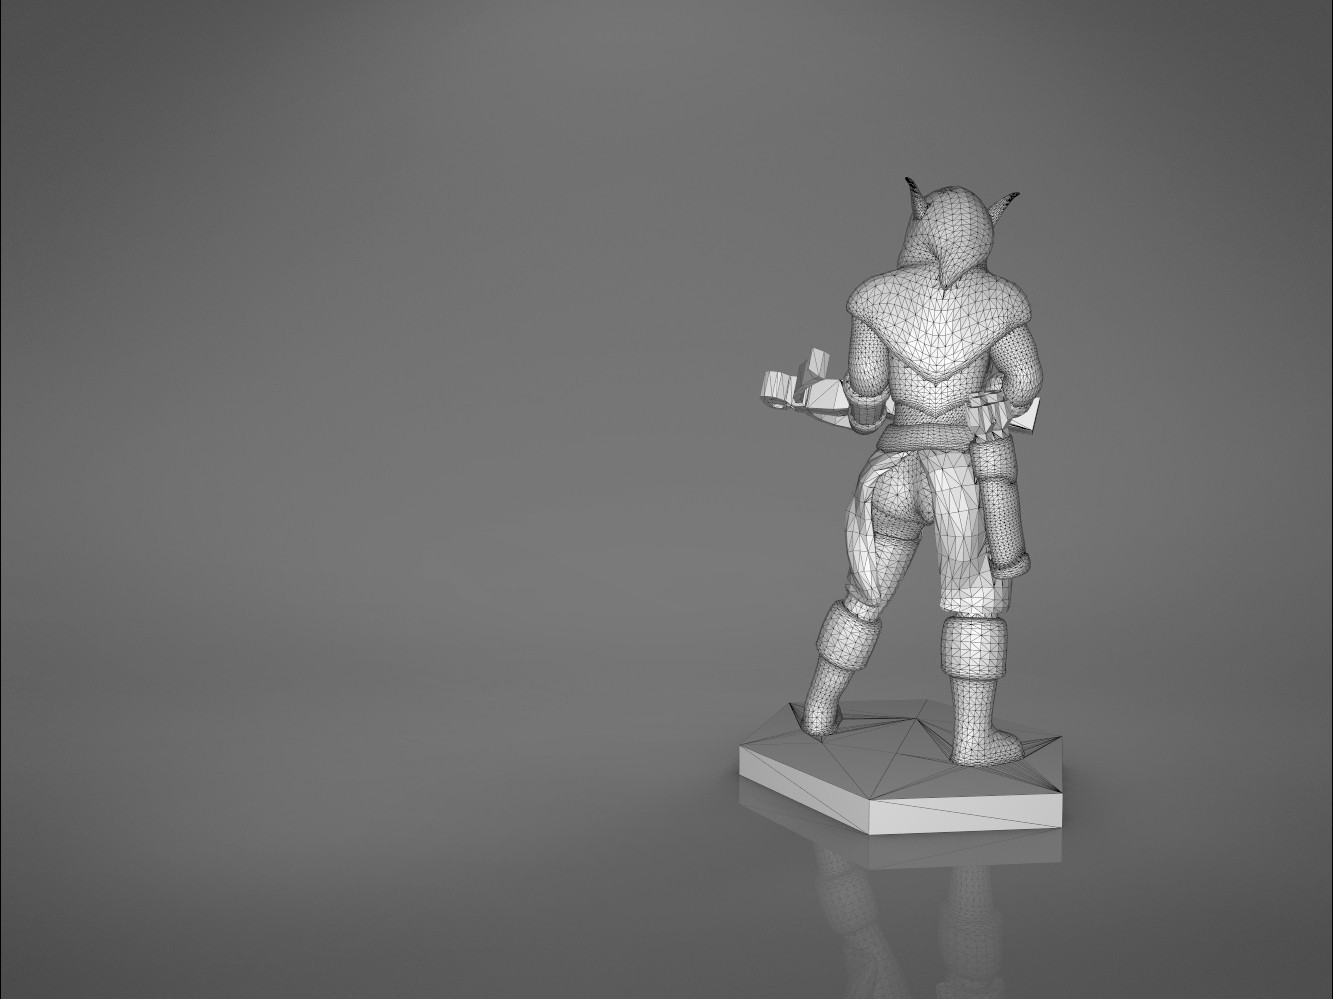 female_ranger-main_render_2.560.jpg Download STL file ELF RANGER FEMALE CHARACTER GAME FIGURES 3D print model • 3D printing object, 3D-mon